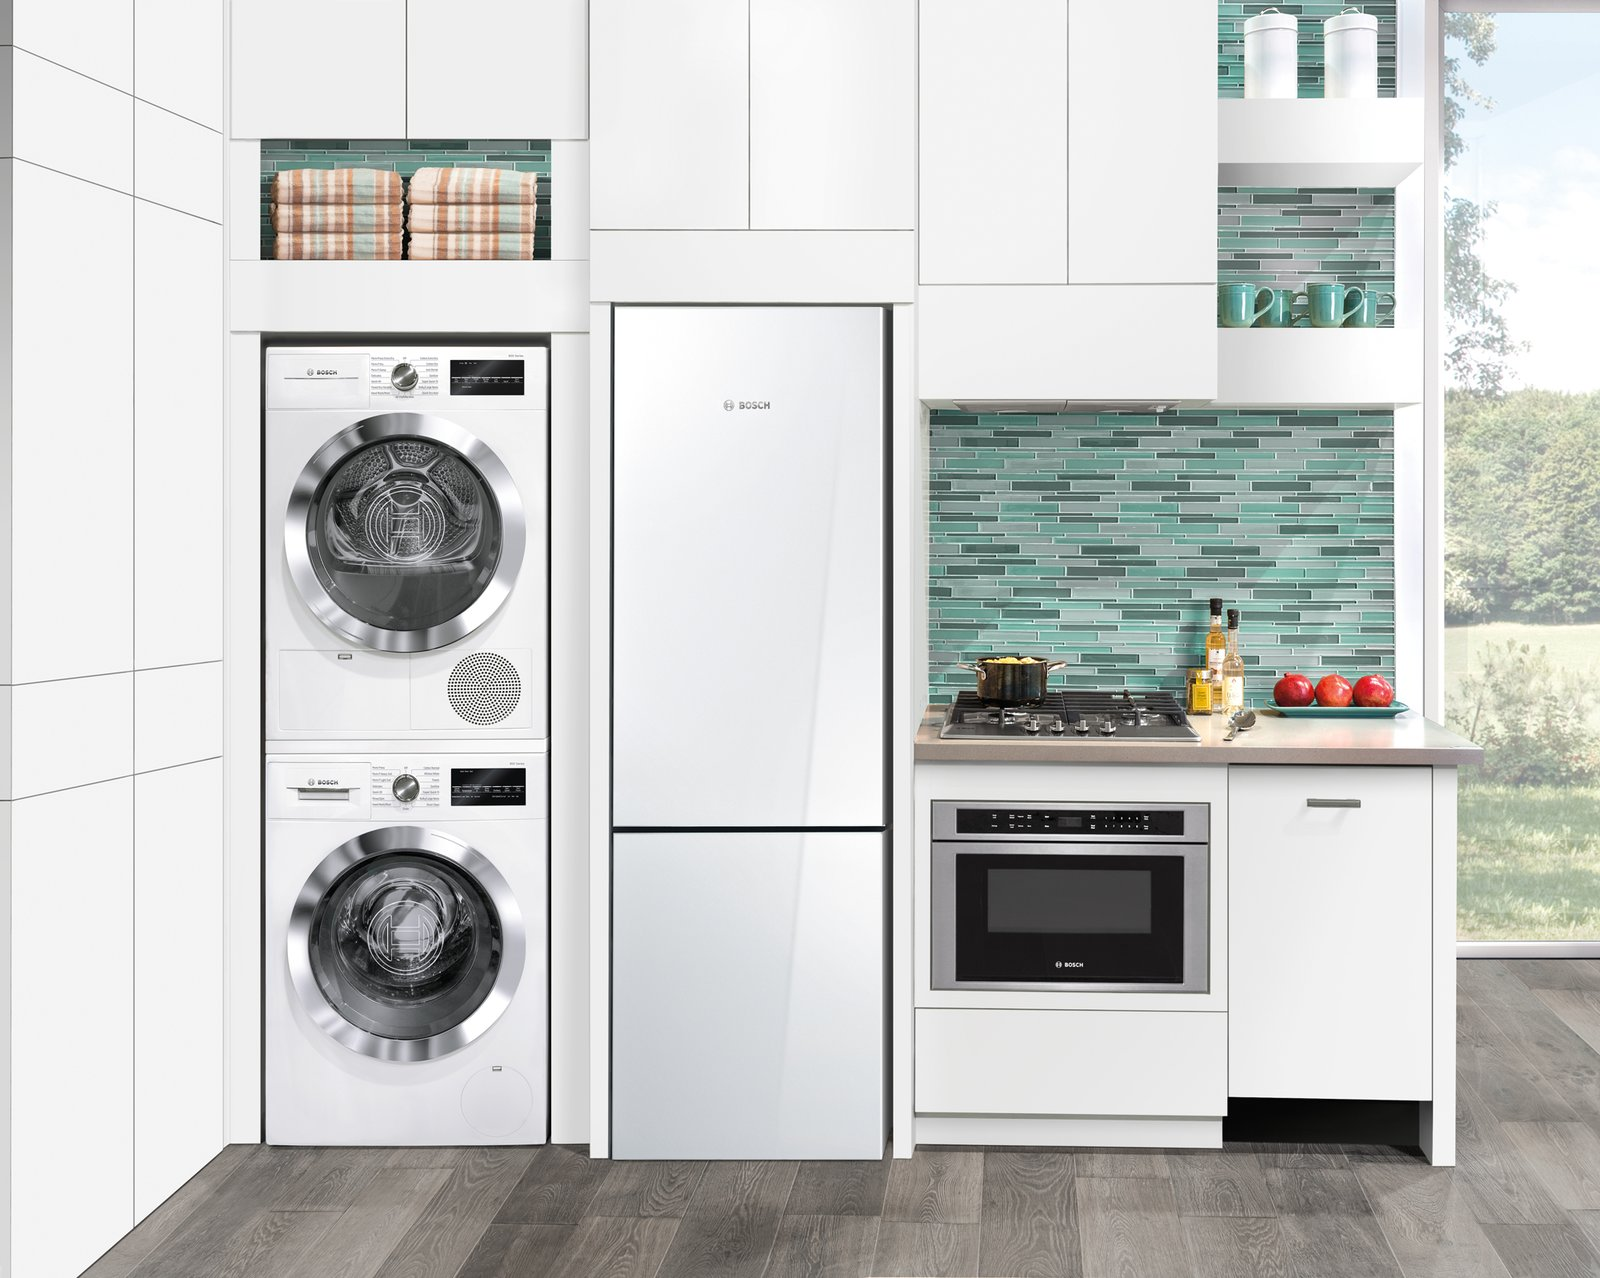 compact appliances for small kitchens steampunk kitchen dwell bosch 39s streamlined and laundry